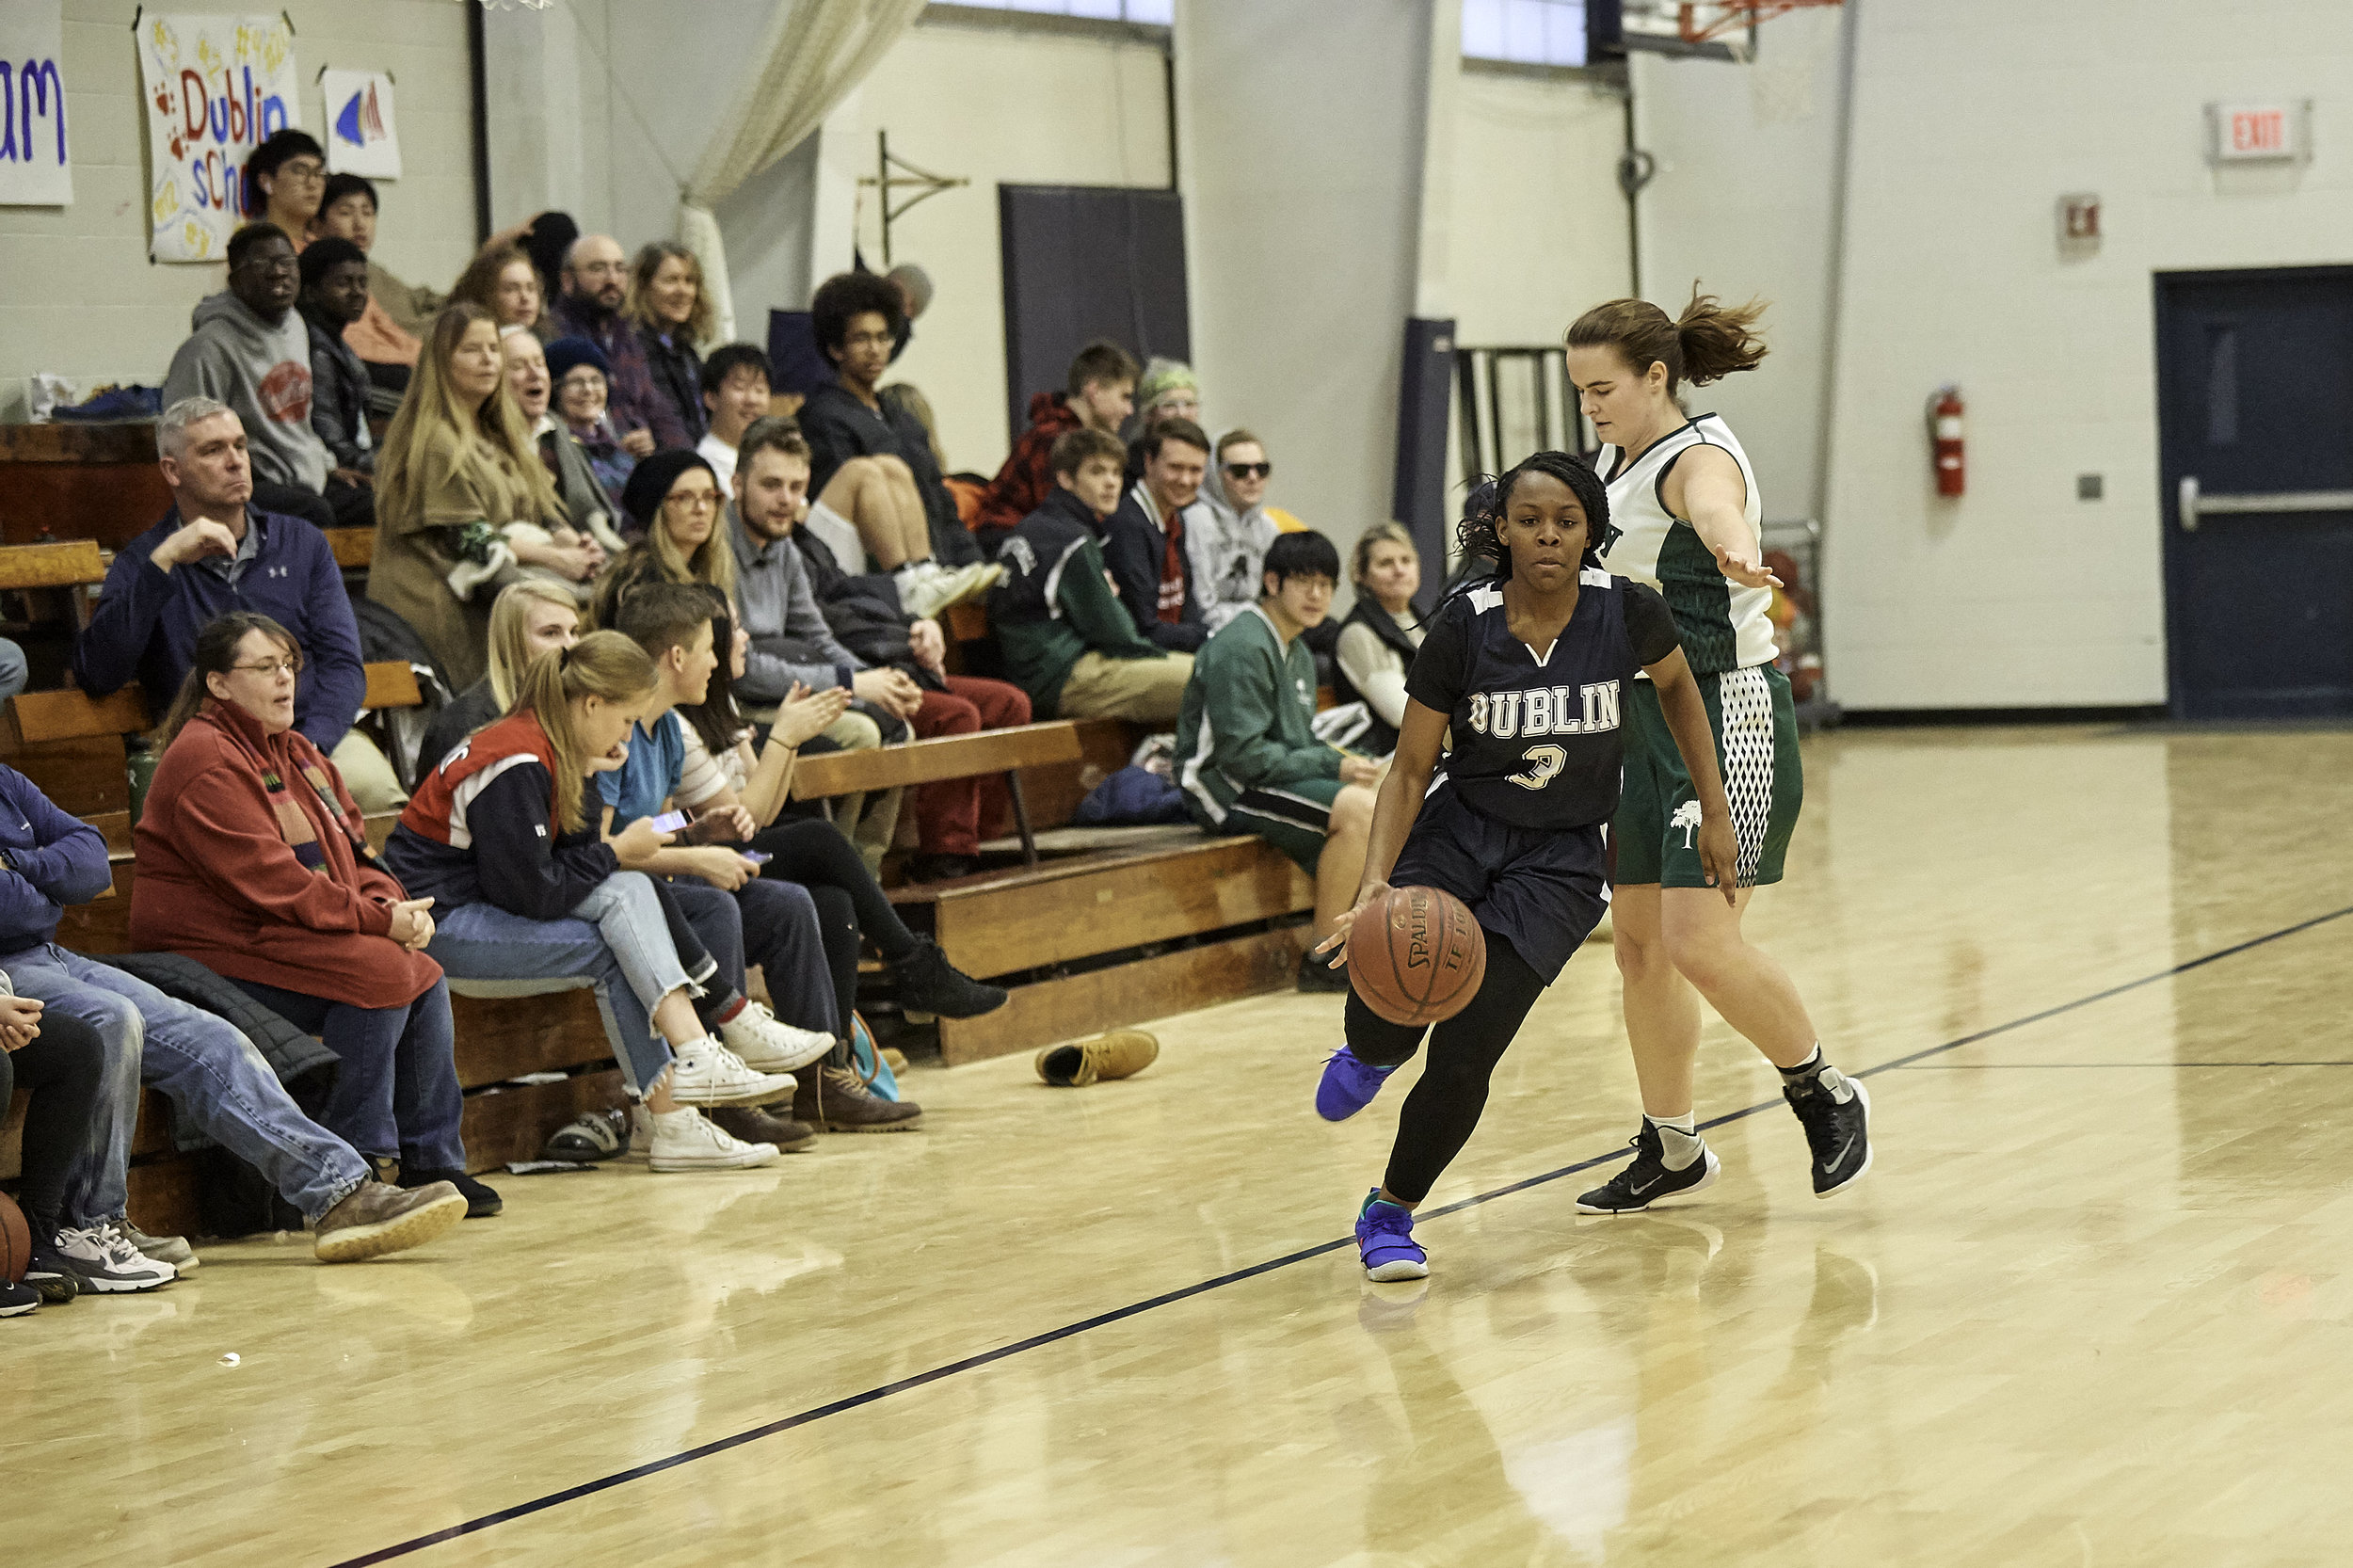 Basketball vs Putney School, February 9, 2019 - 167448.jpg